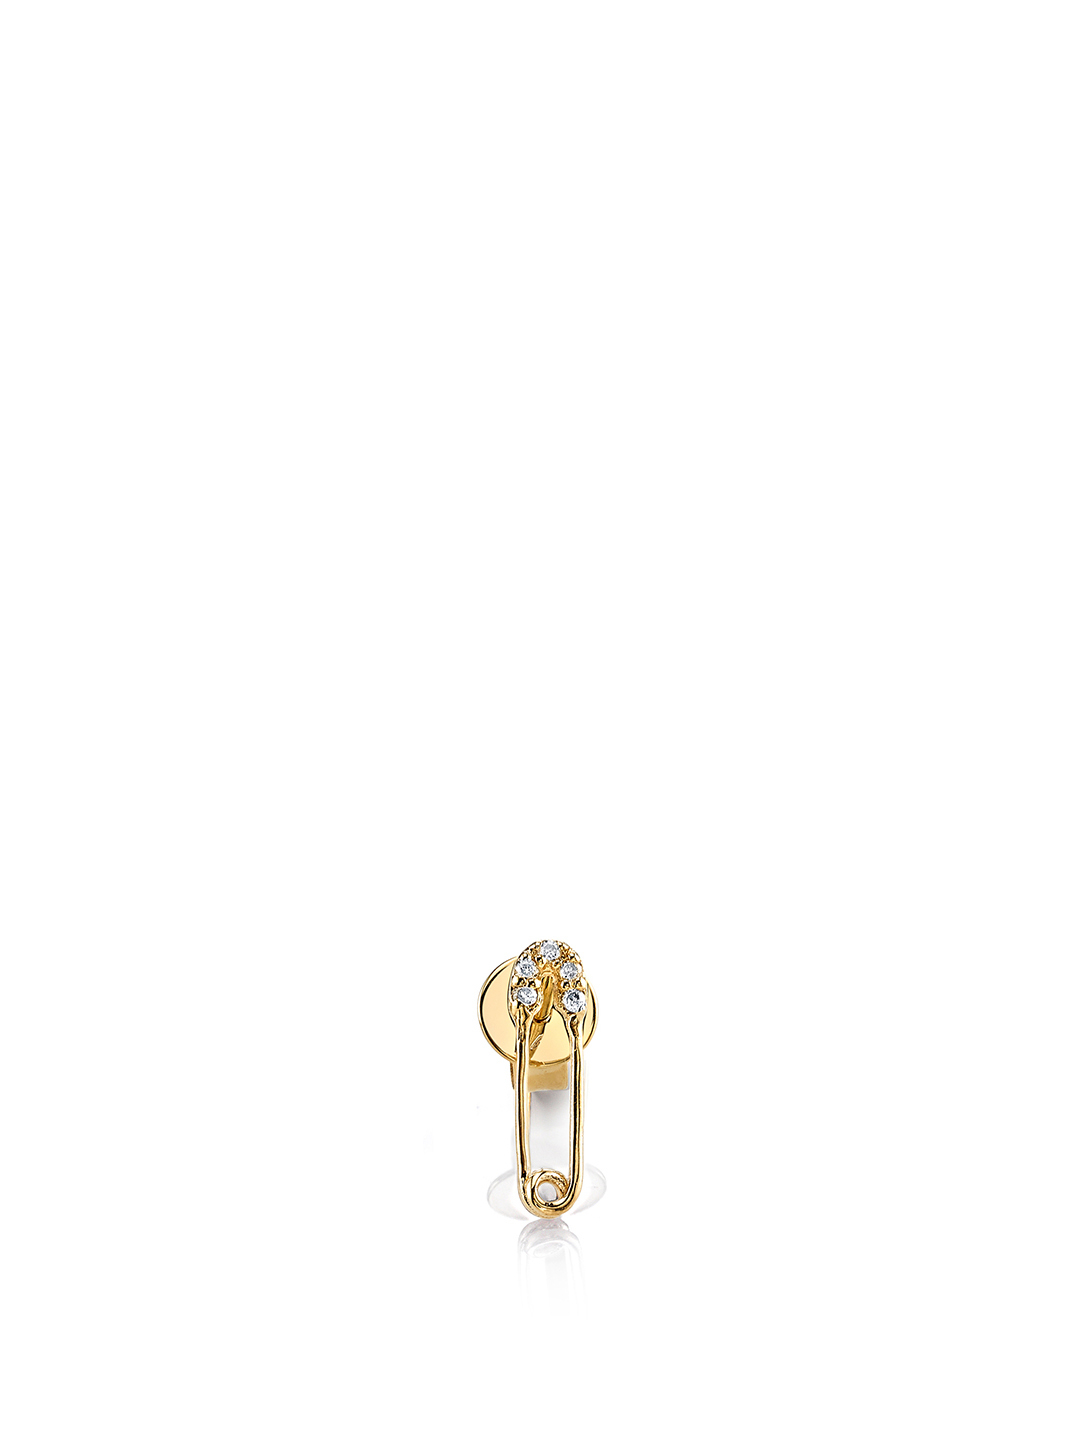 SYDNEY EVAN 14K Gold Safety Pin Stud Earring Womens Gold